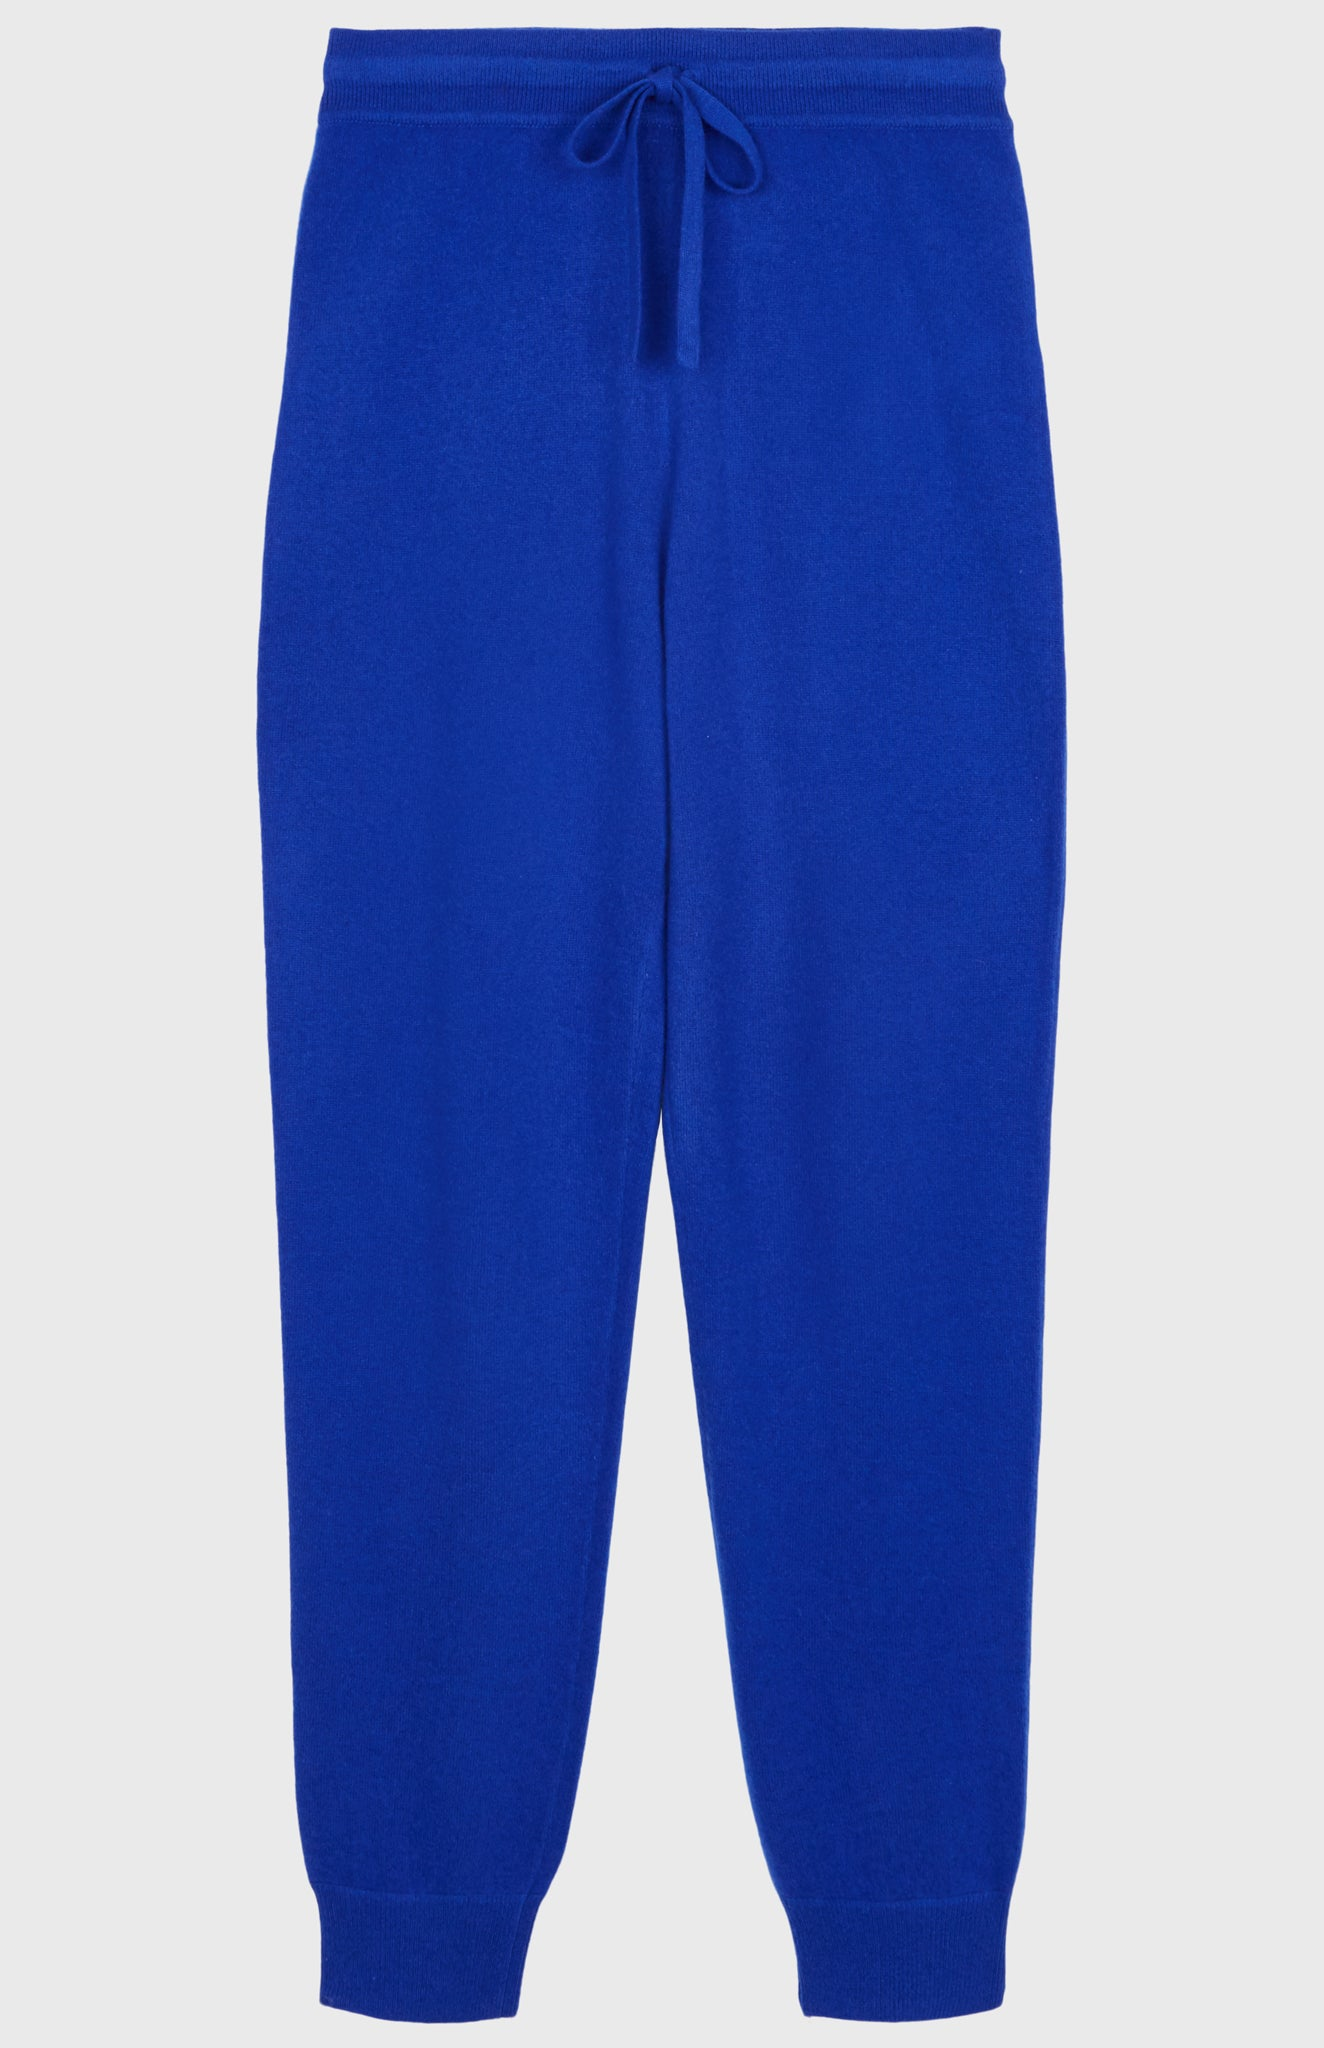 Women's Cashmere Blend Jogging Trousers In Bright Blue